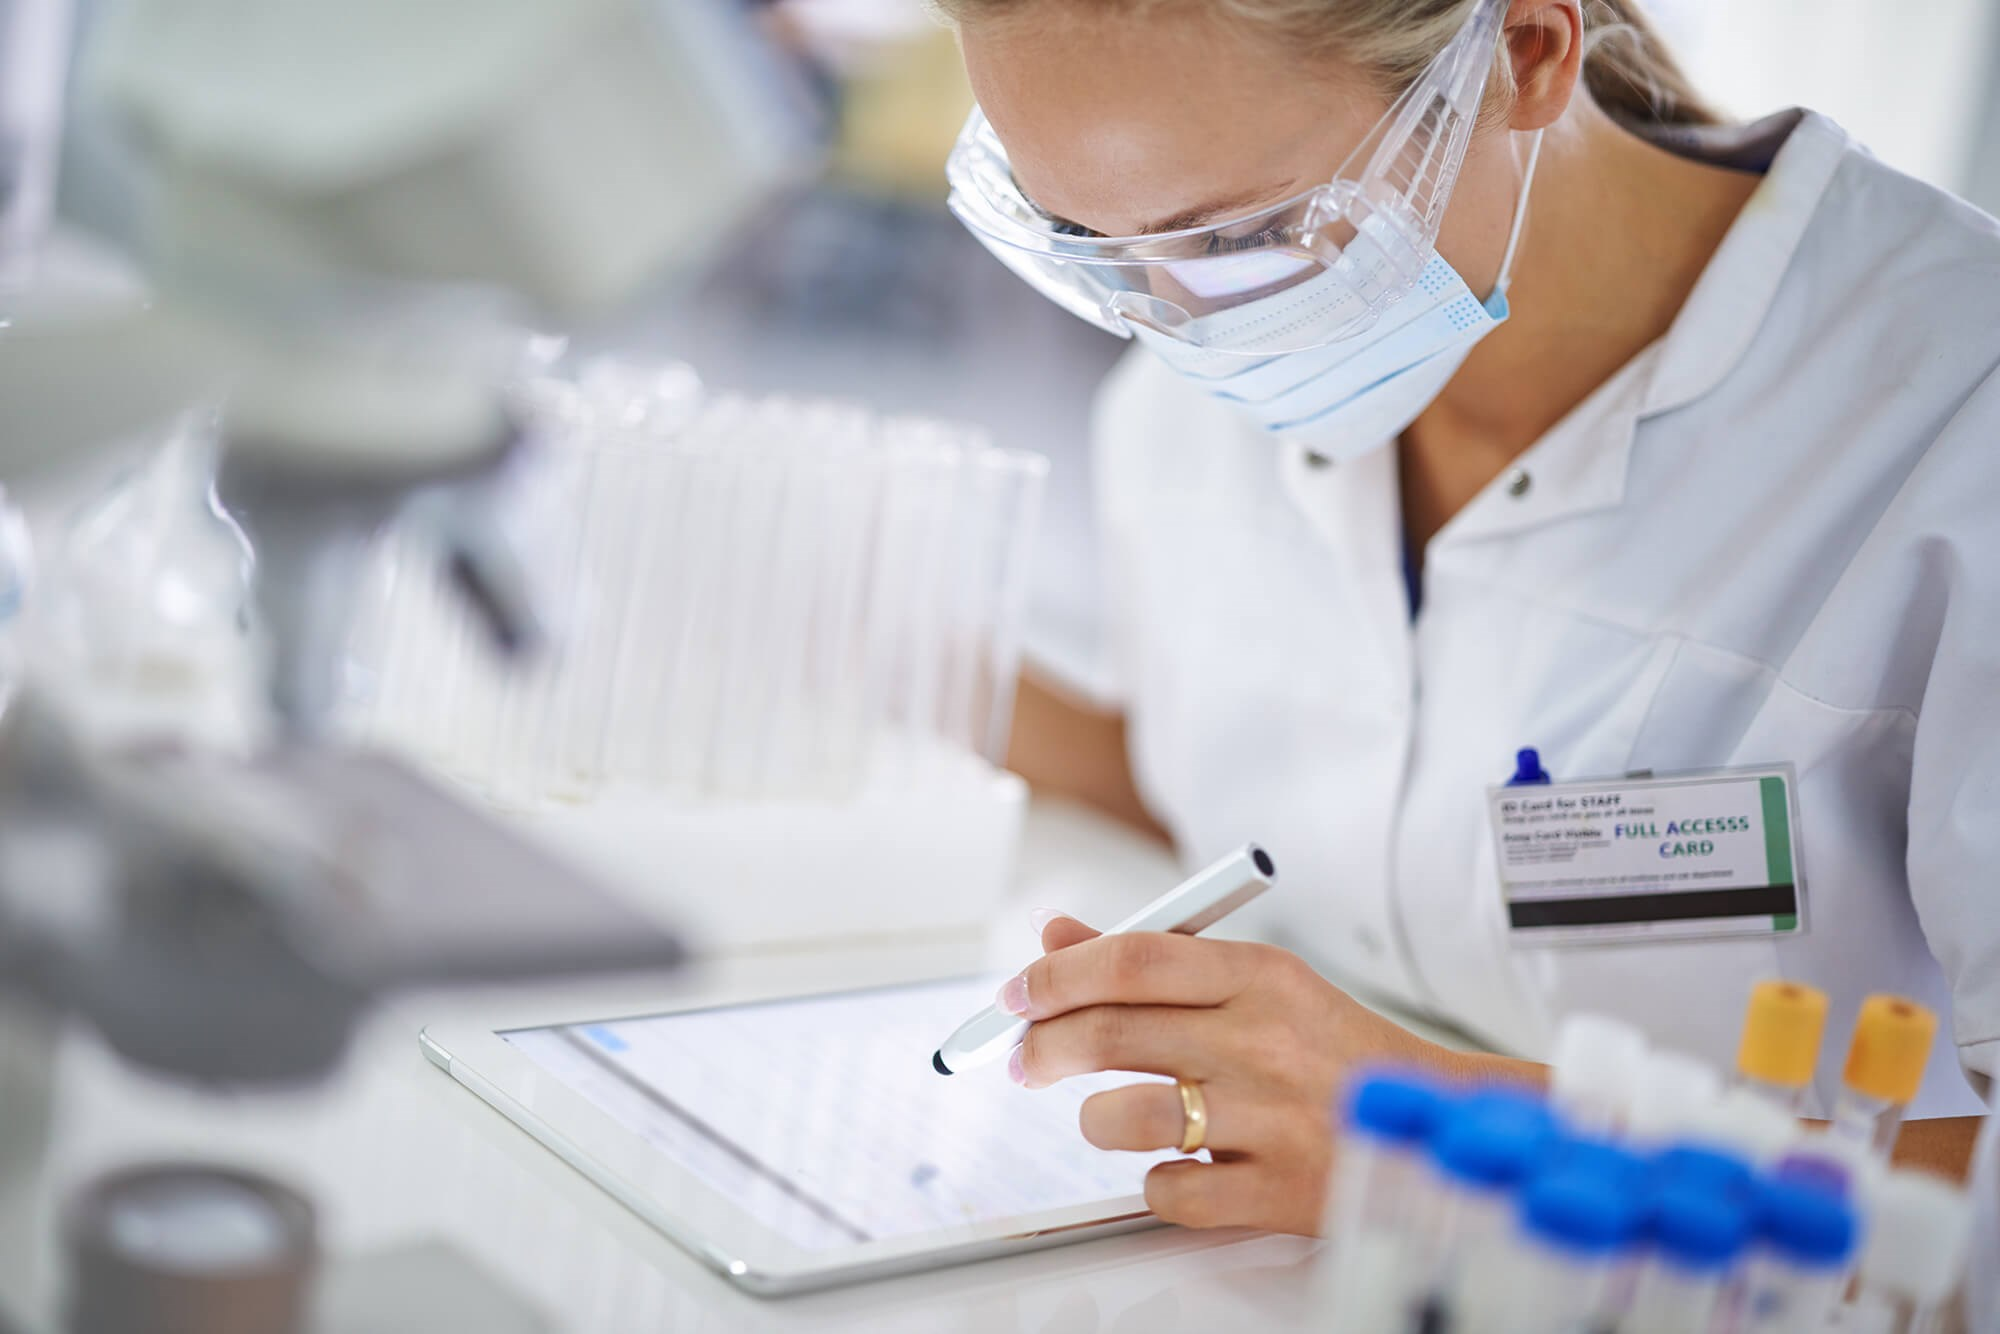 Modernizing Eligibility Criteria Could Increase Access to, Participation in Clinical Trials